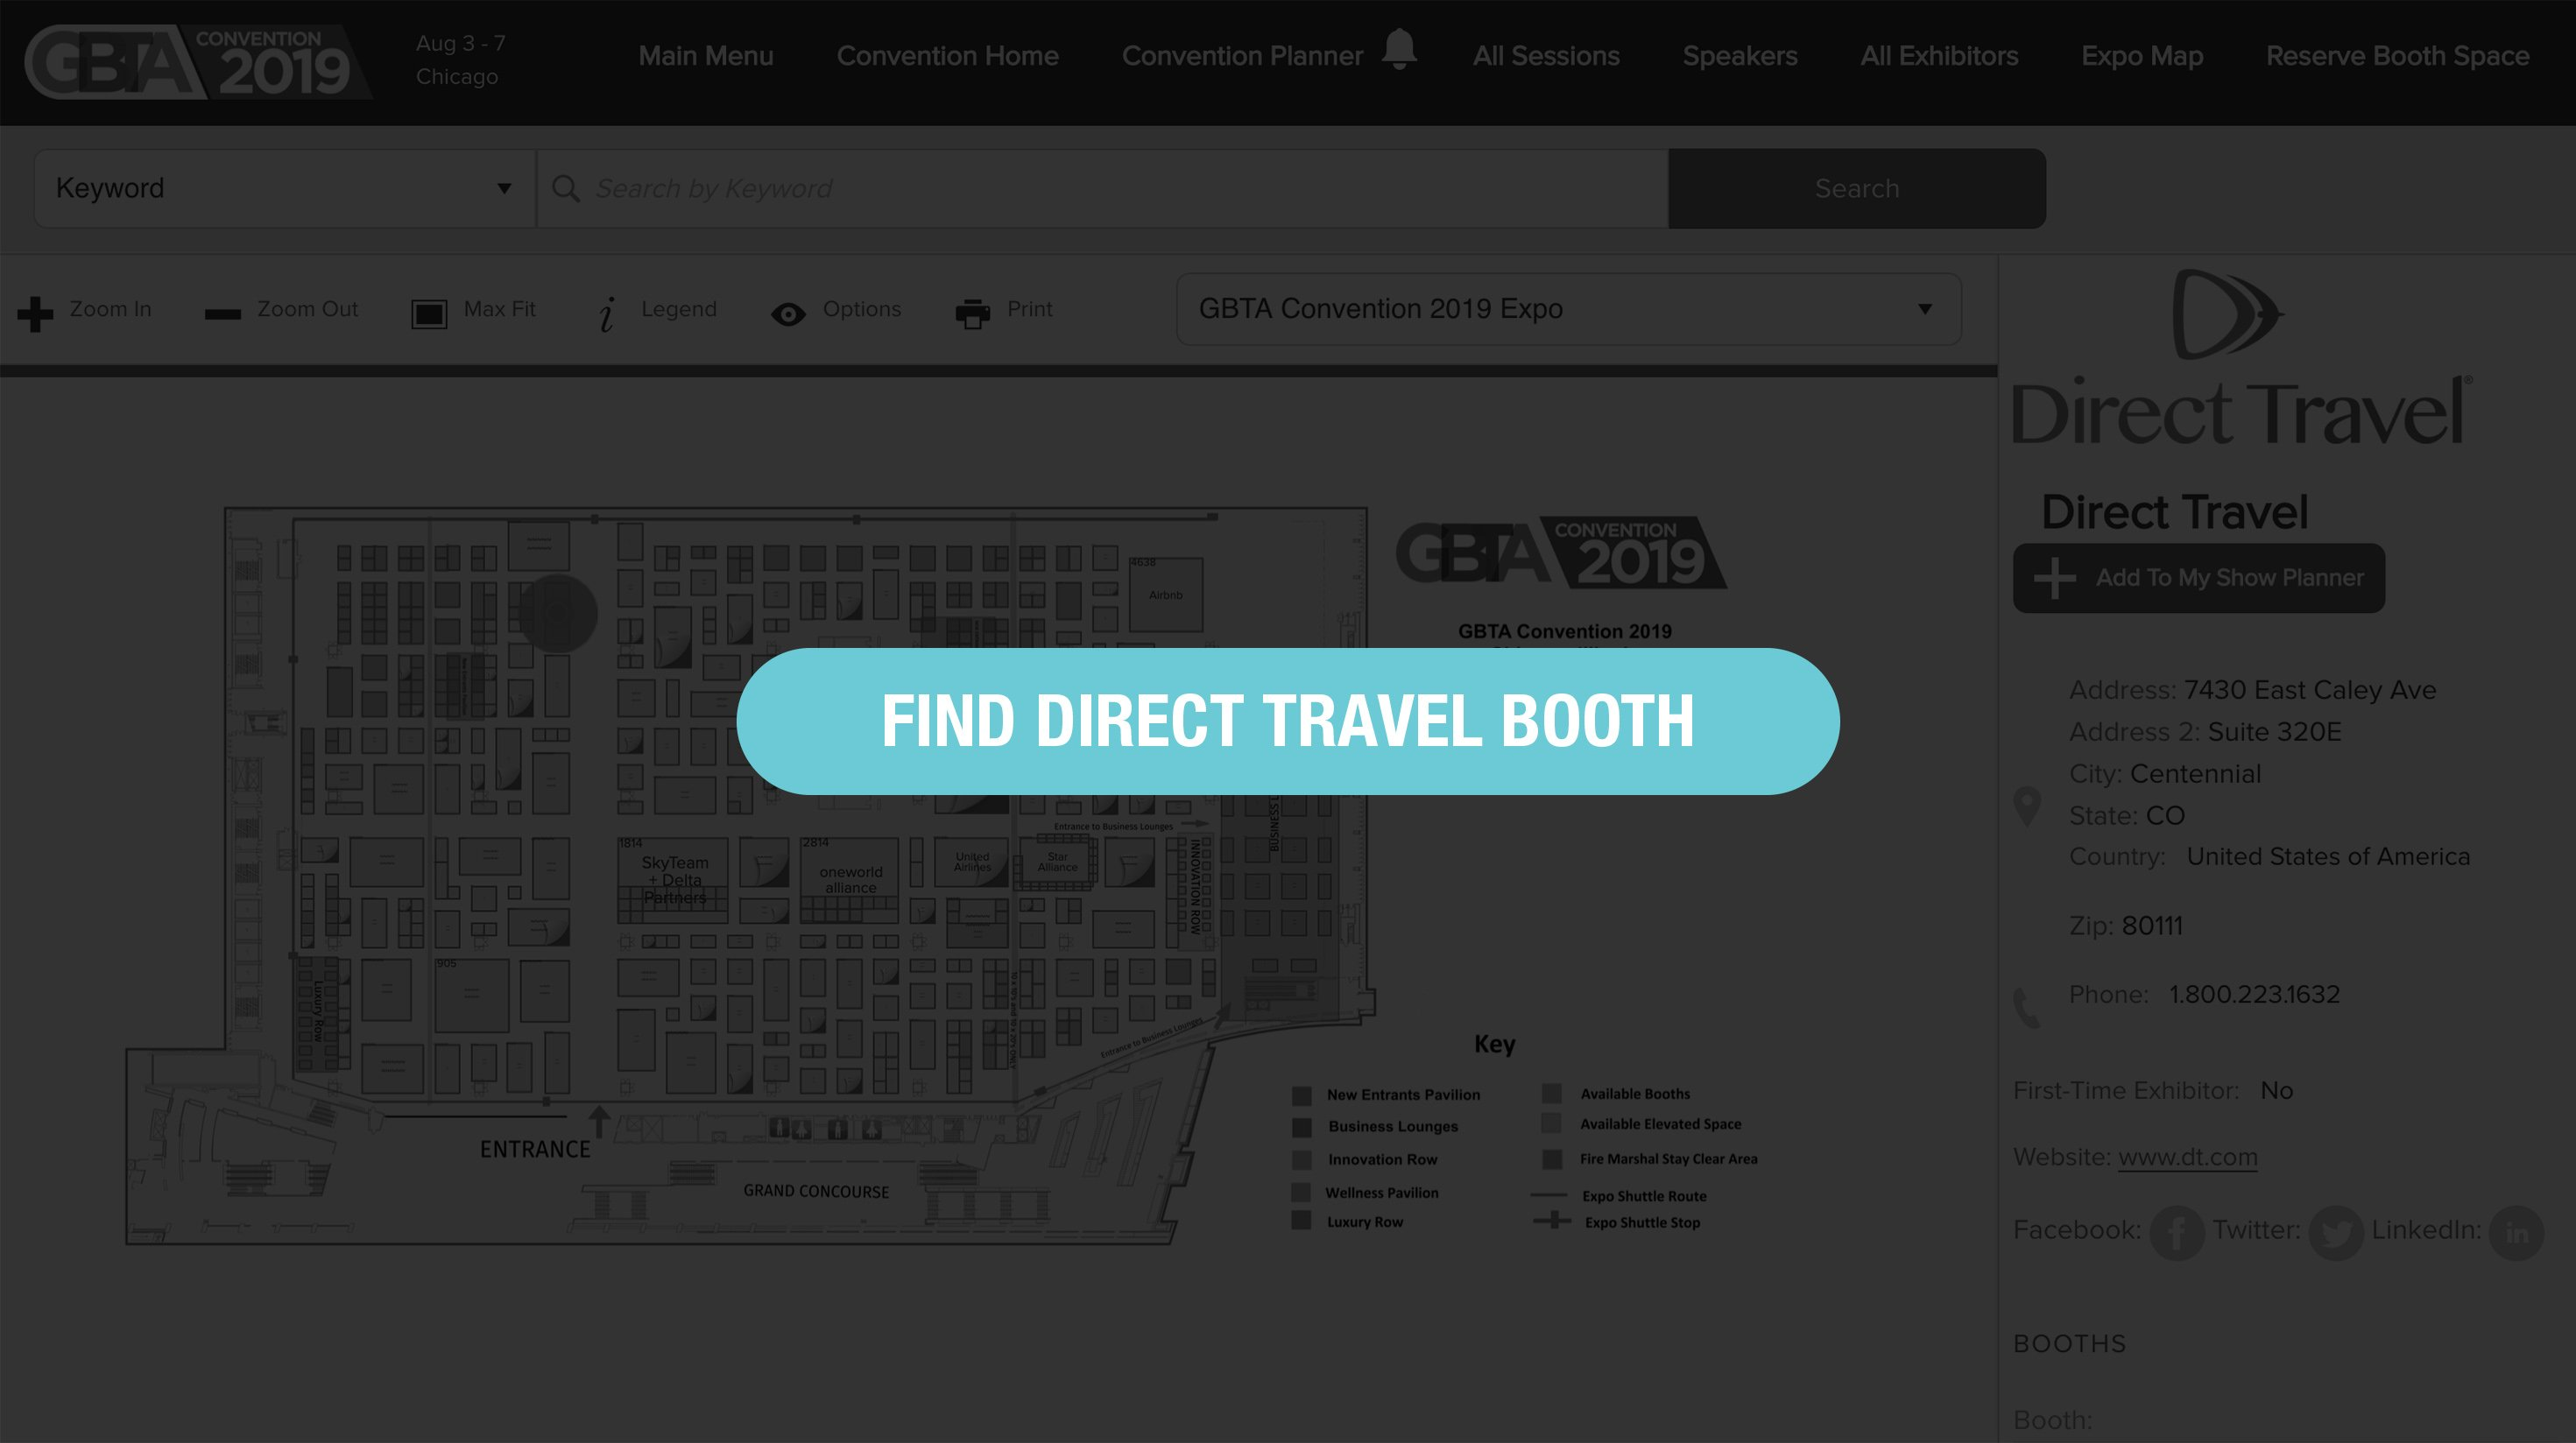 Find Direct Travel Booth